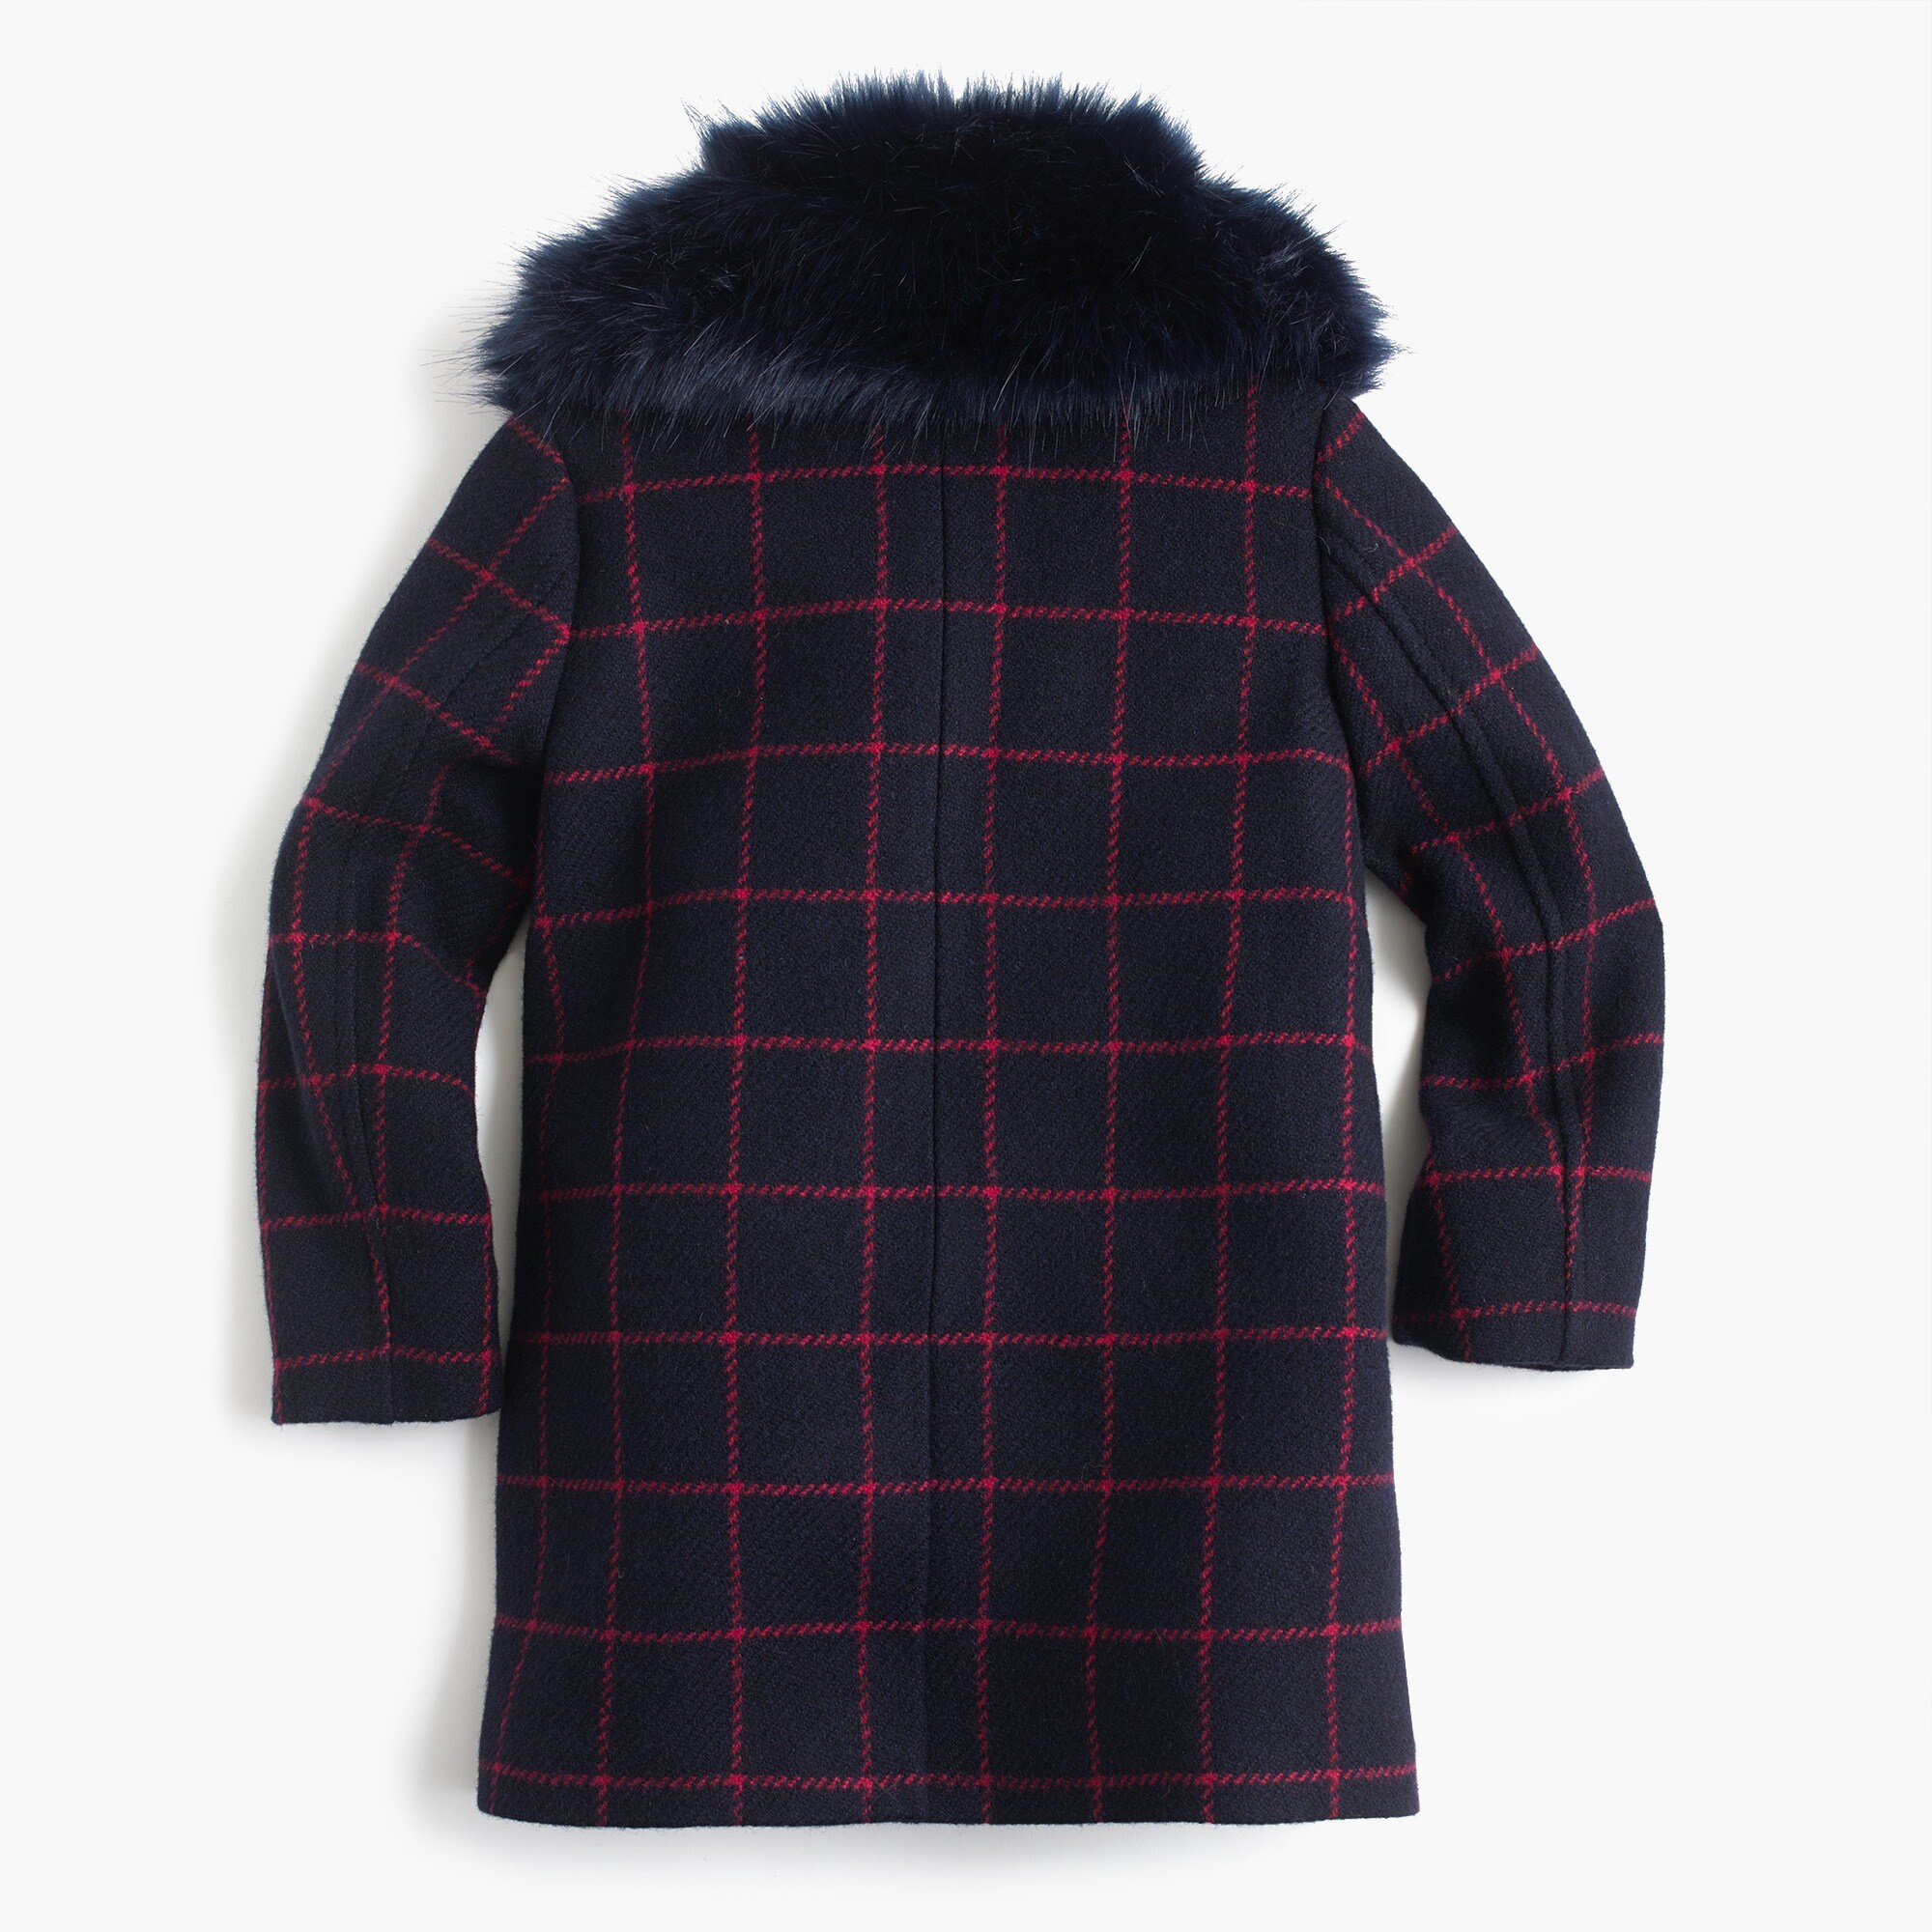 GIrls' wool coat in windowpane